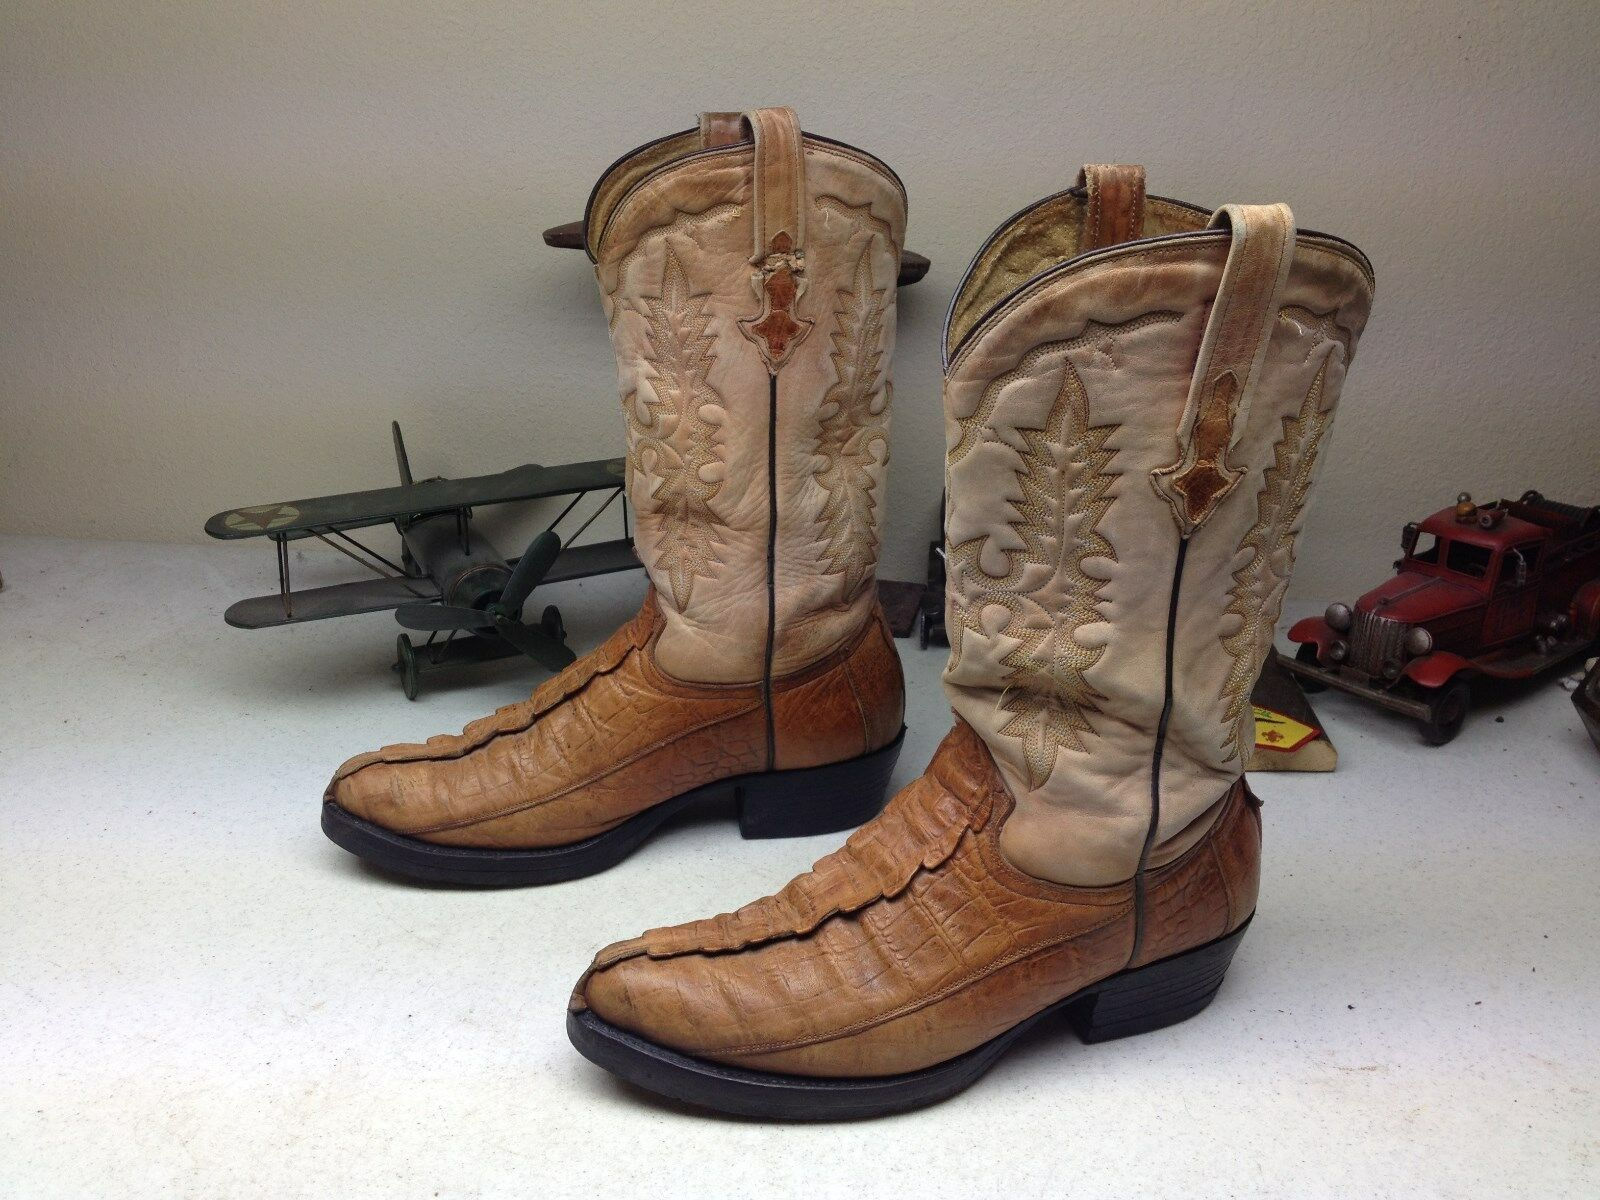 VINTAGE DISTRESSED EMBOSSED CAIMAN LEATHER WESTERN ENGINEER BOOTS SIZE 9-10 M